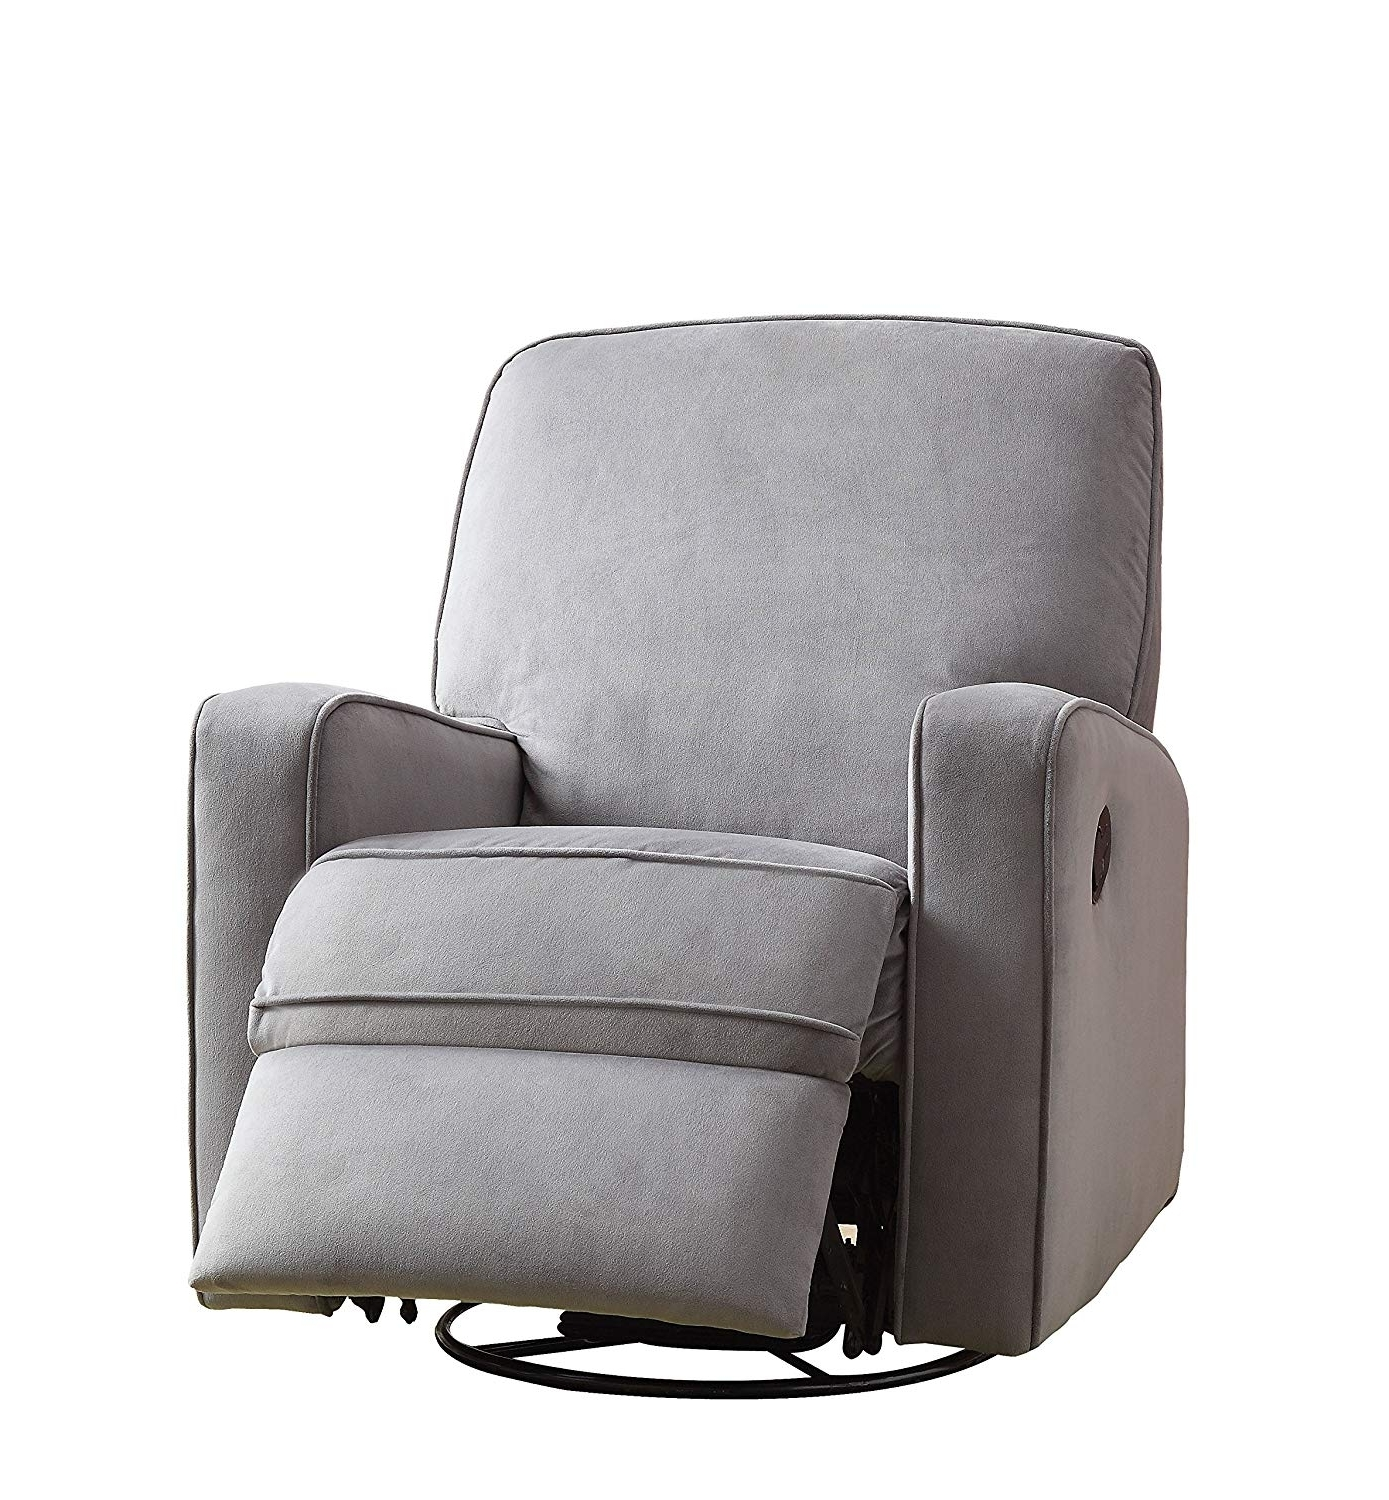 Most Current Zen Rocking Chairs Intended For Amazon: Pulaski Sutton Swivel Glider Recliner, Zen Grey With (View 8 of 15)